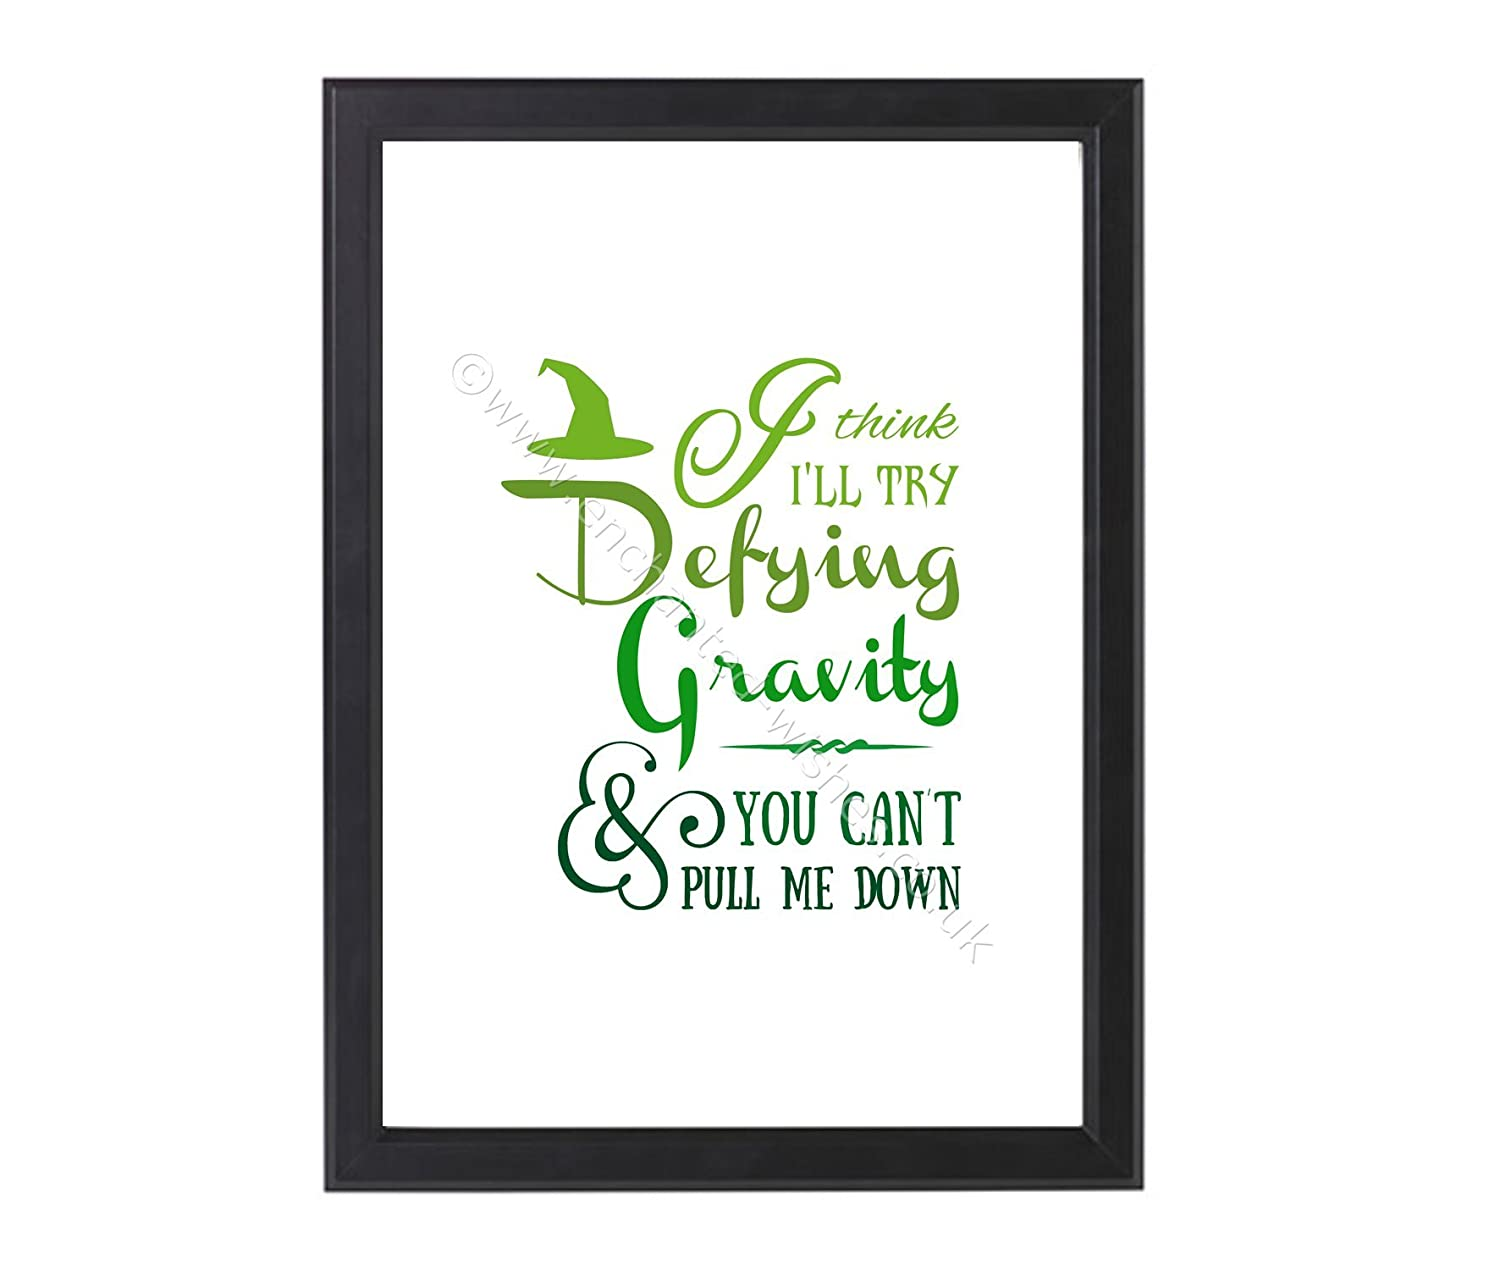 Defying Gravity Print, Wicked Musical Lyric Quote Print, Unframed A4 or 8x10